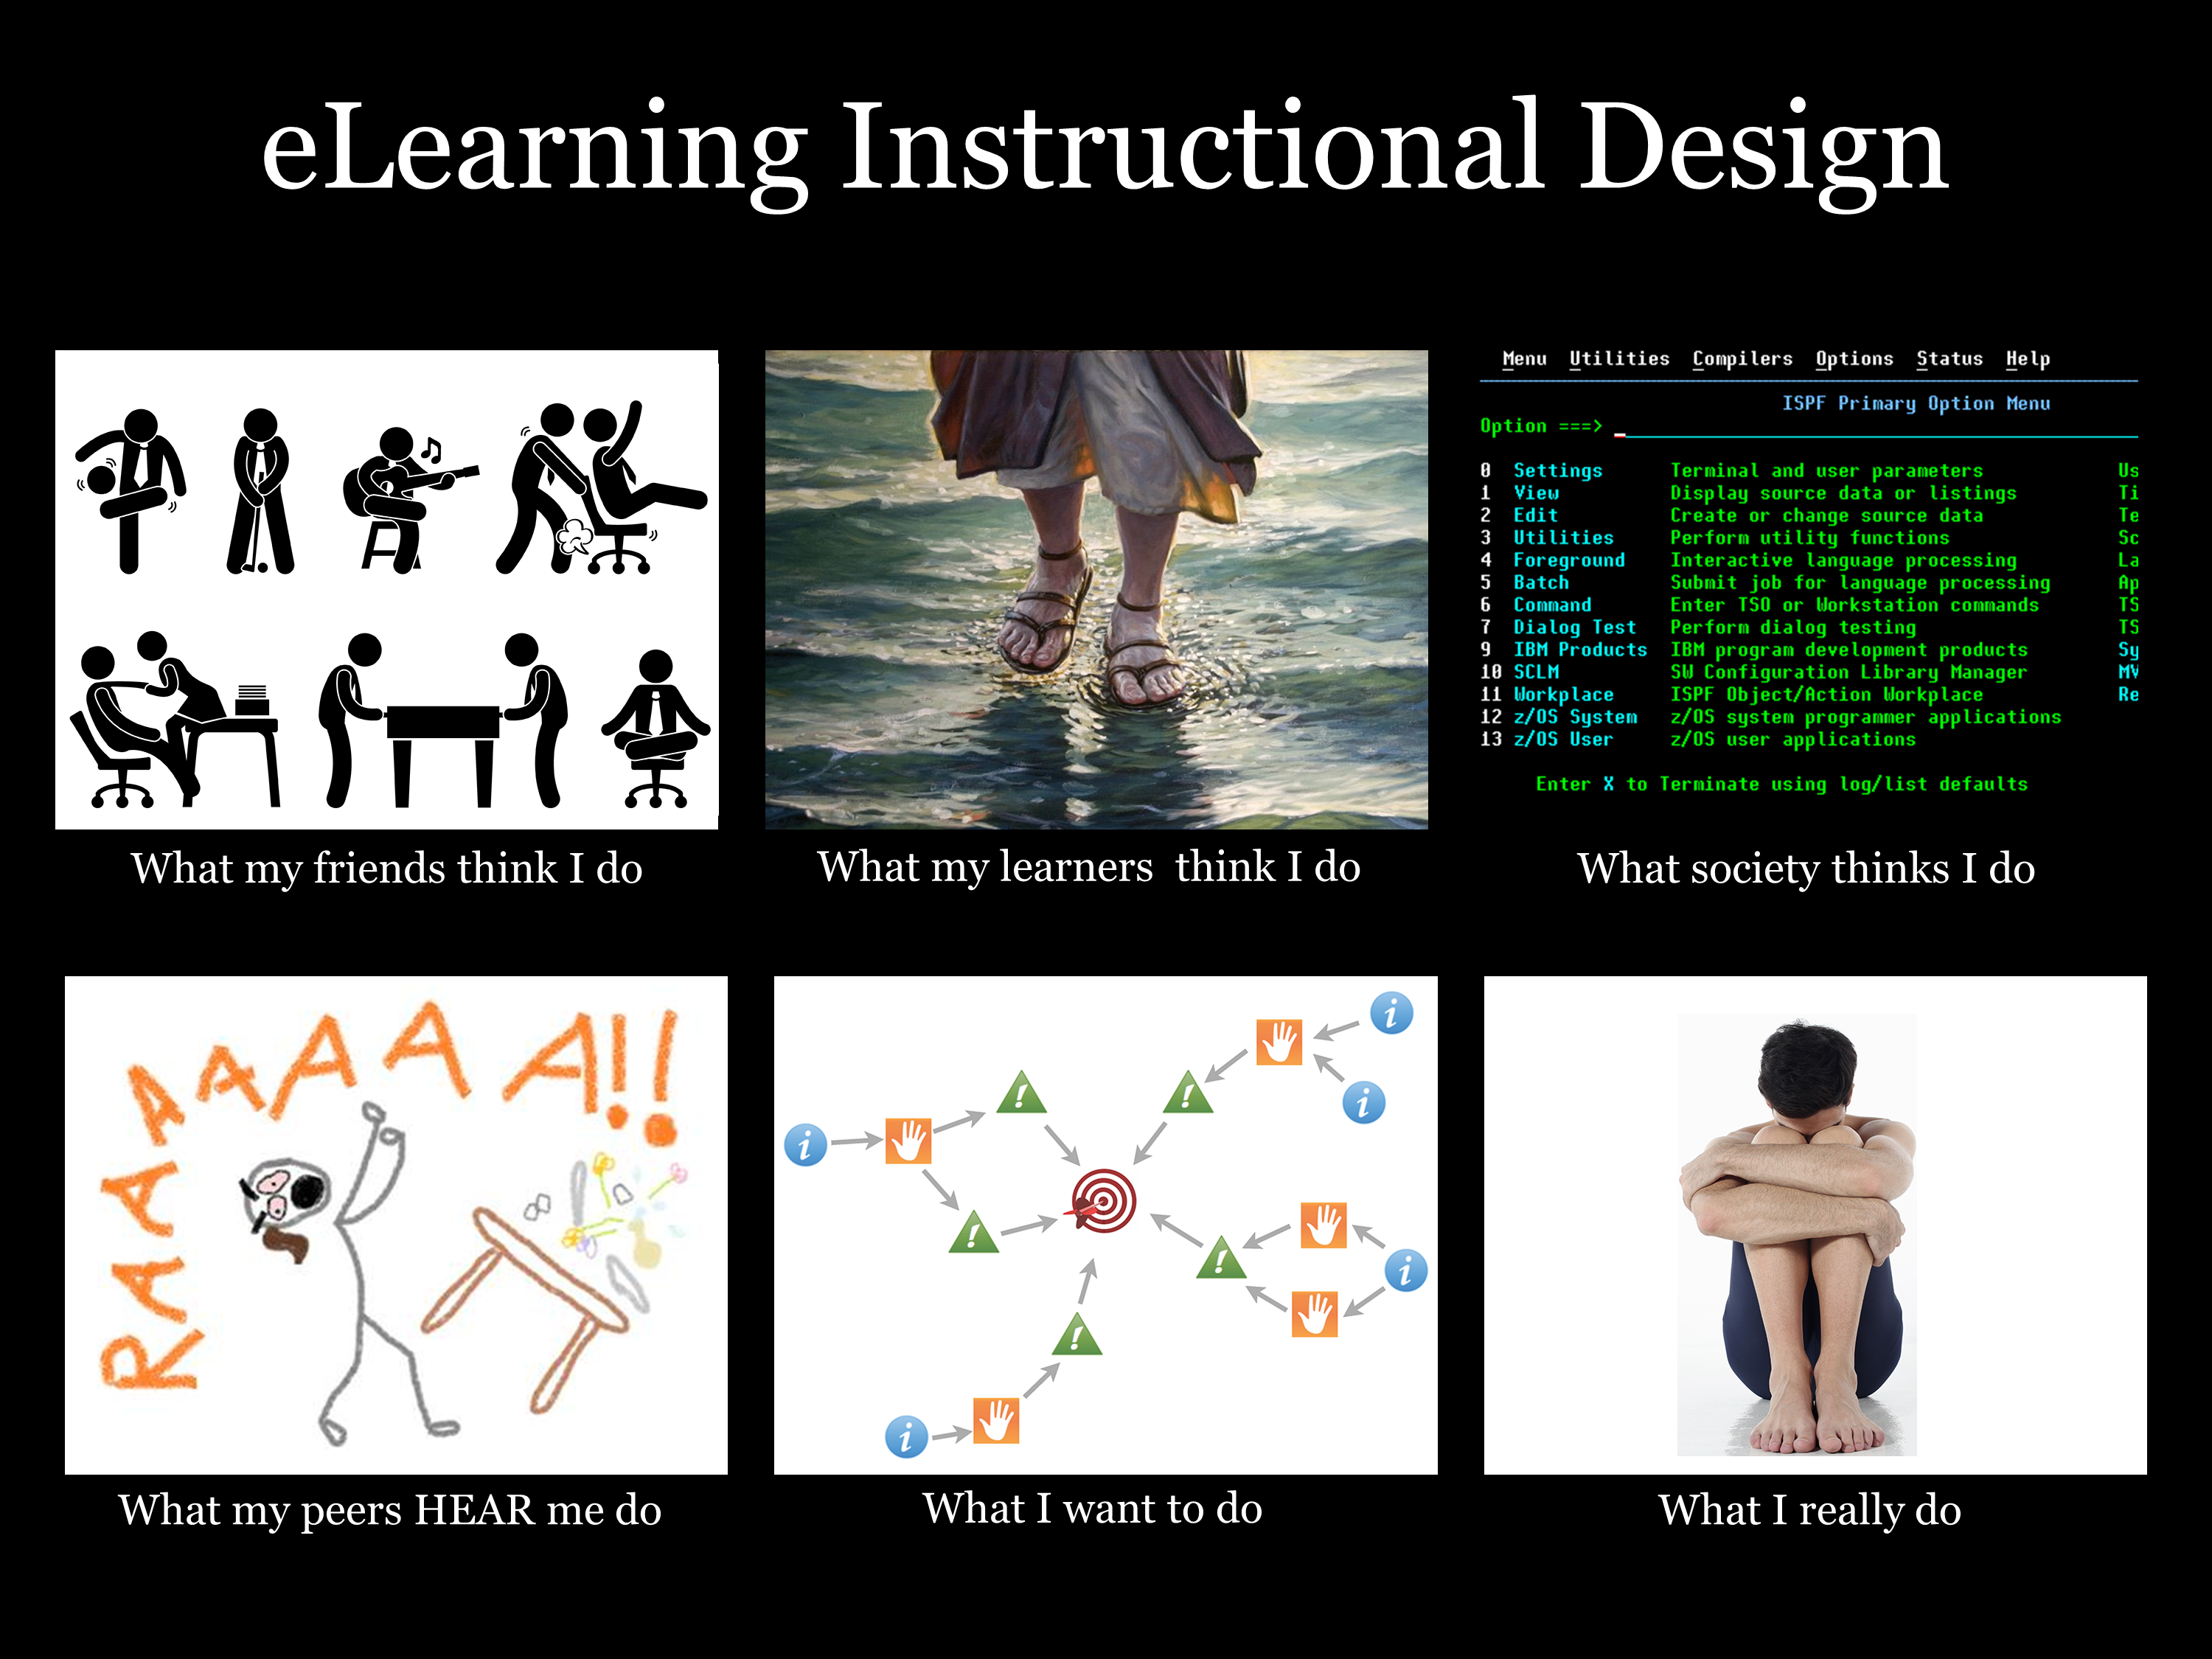 What do e learning designers really do 30 e learning heroes i think theyre all hilarious httpsarticulate heroess3azonawscommentswhatireallydo abramsiegel1tgwqqg maxwellsz